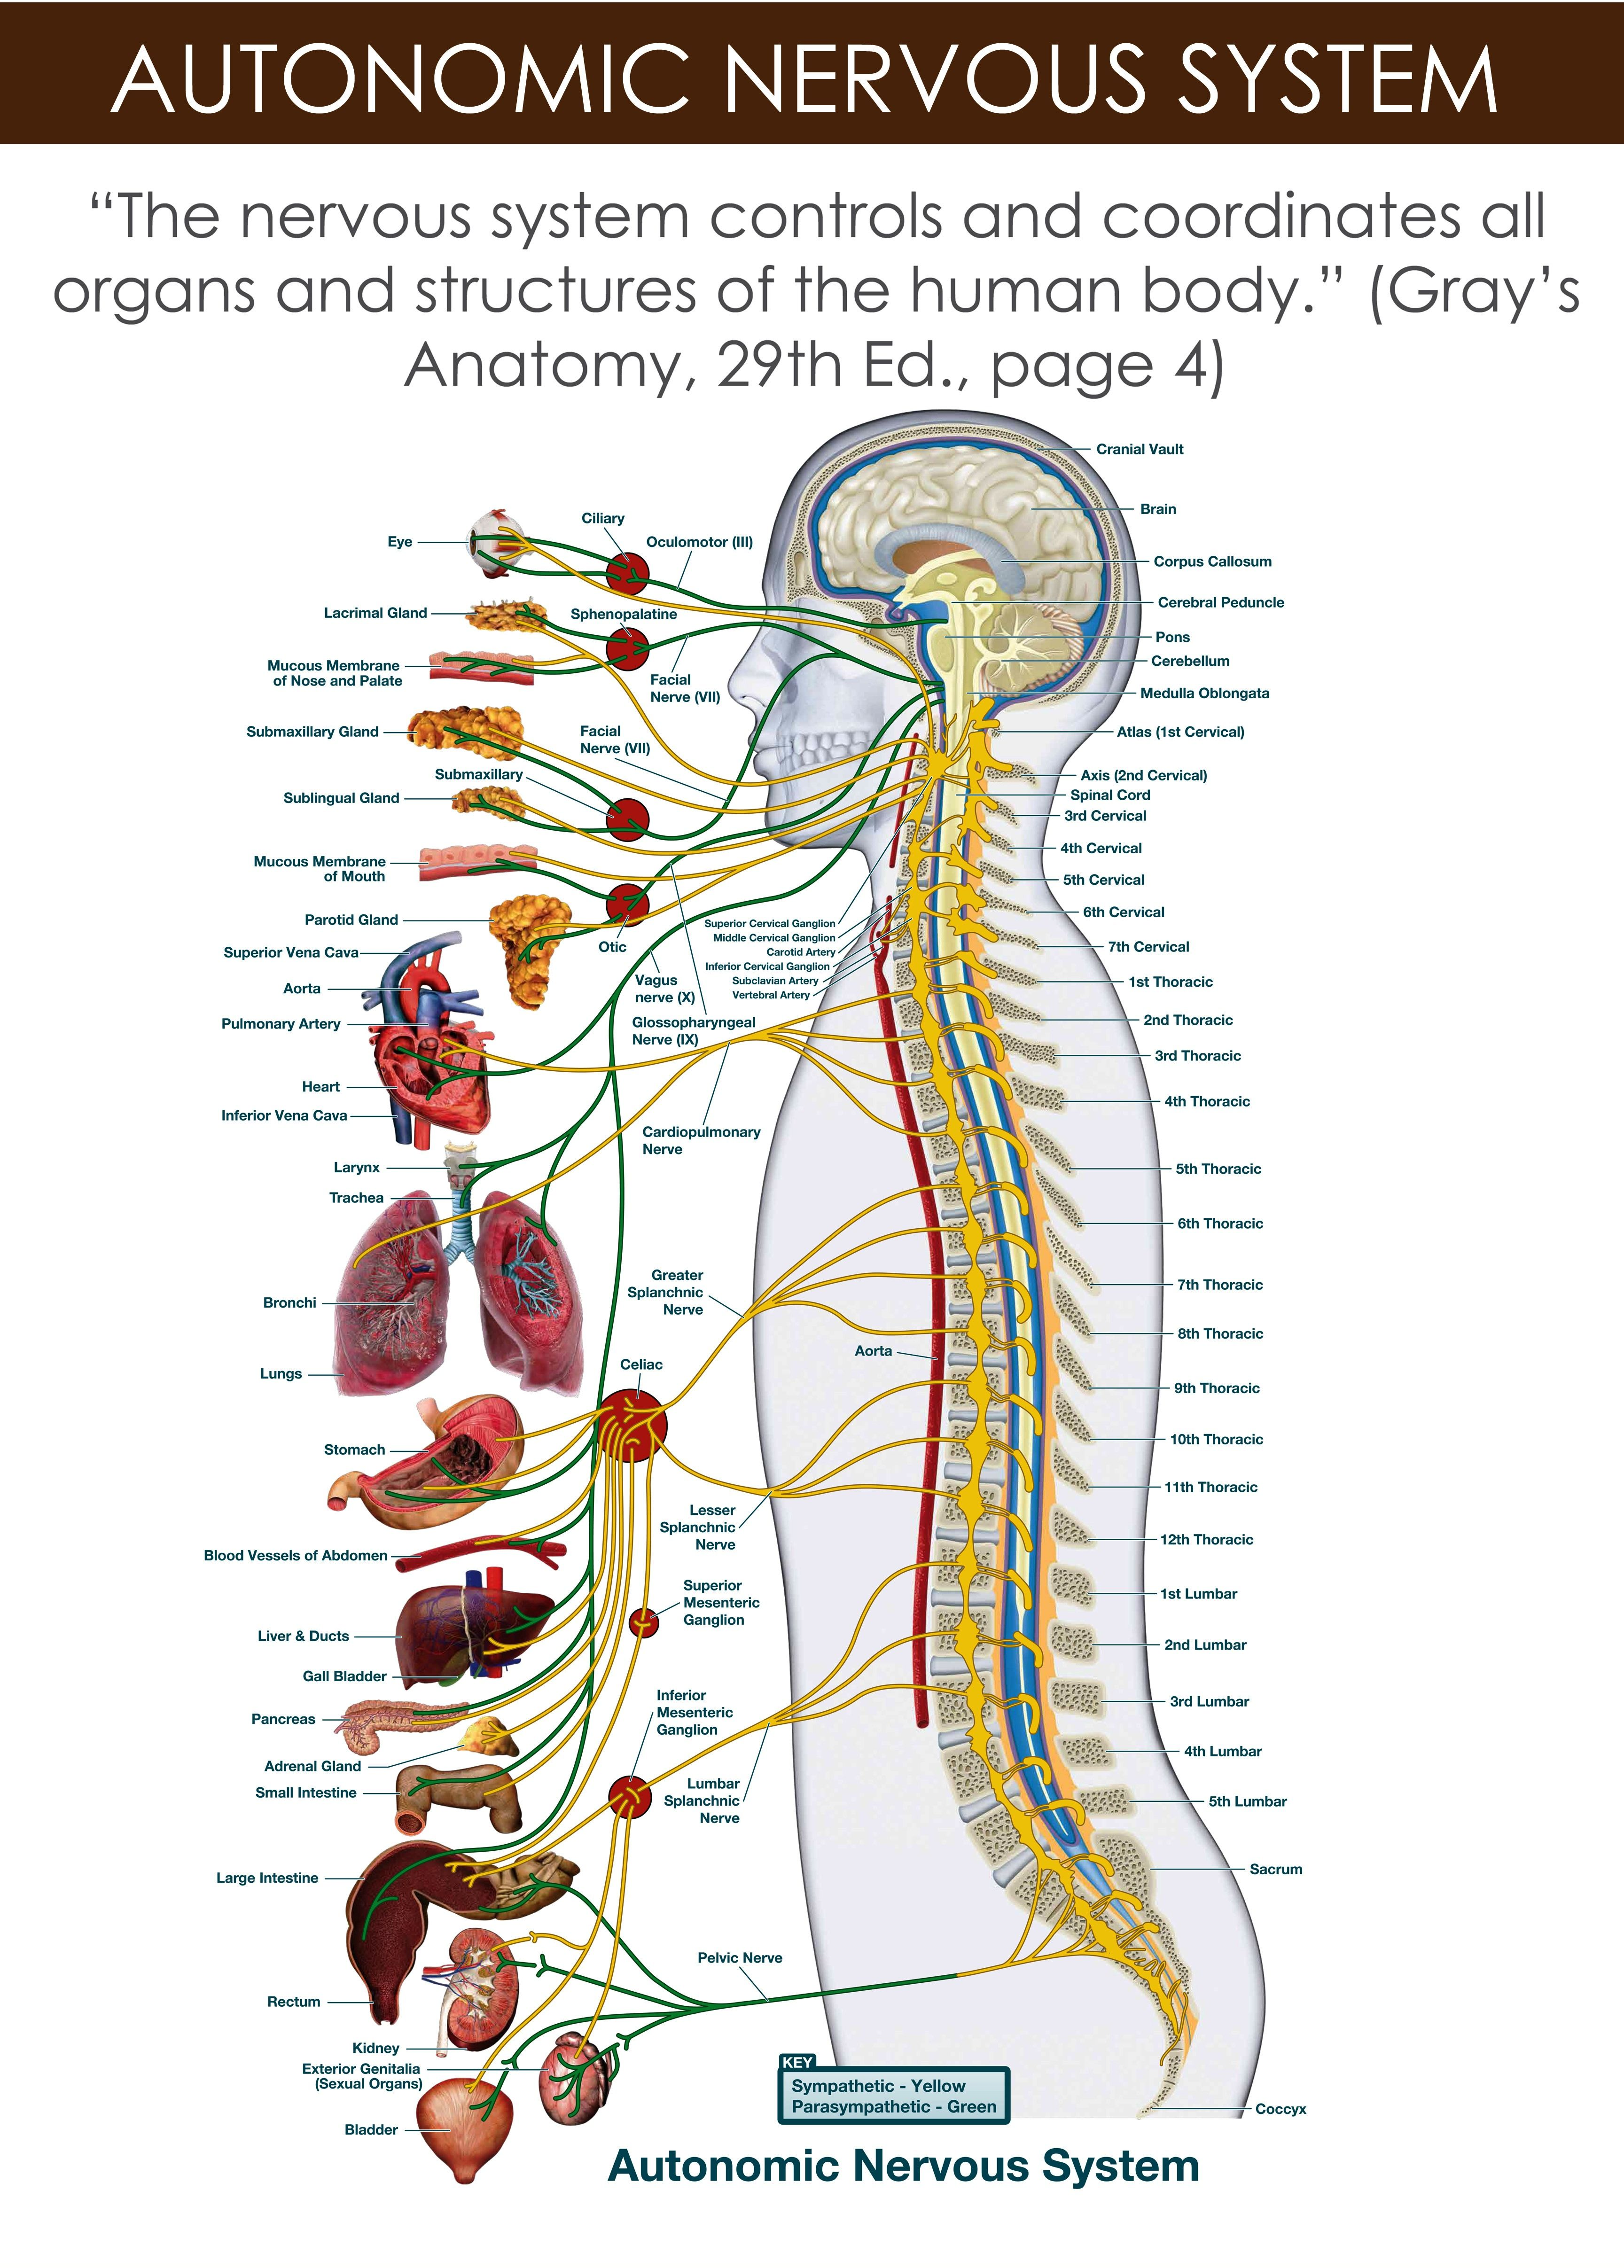 The autonomic nervous system is the part of the nervous system that ...